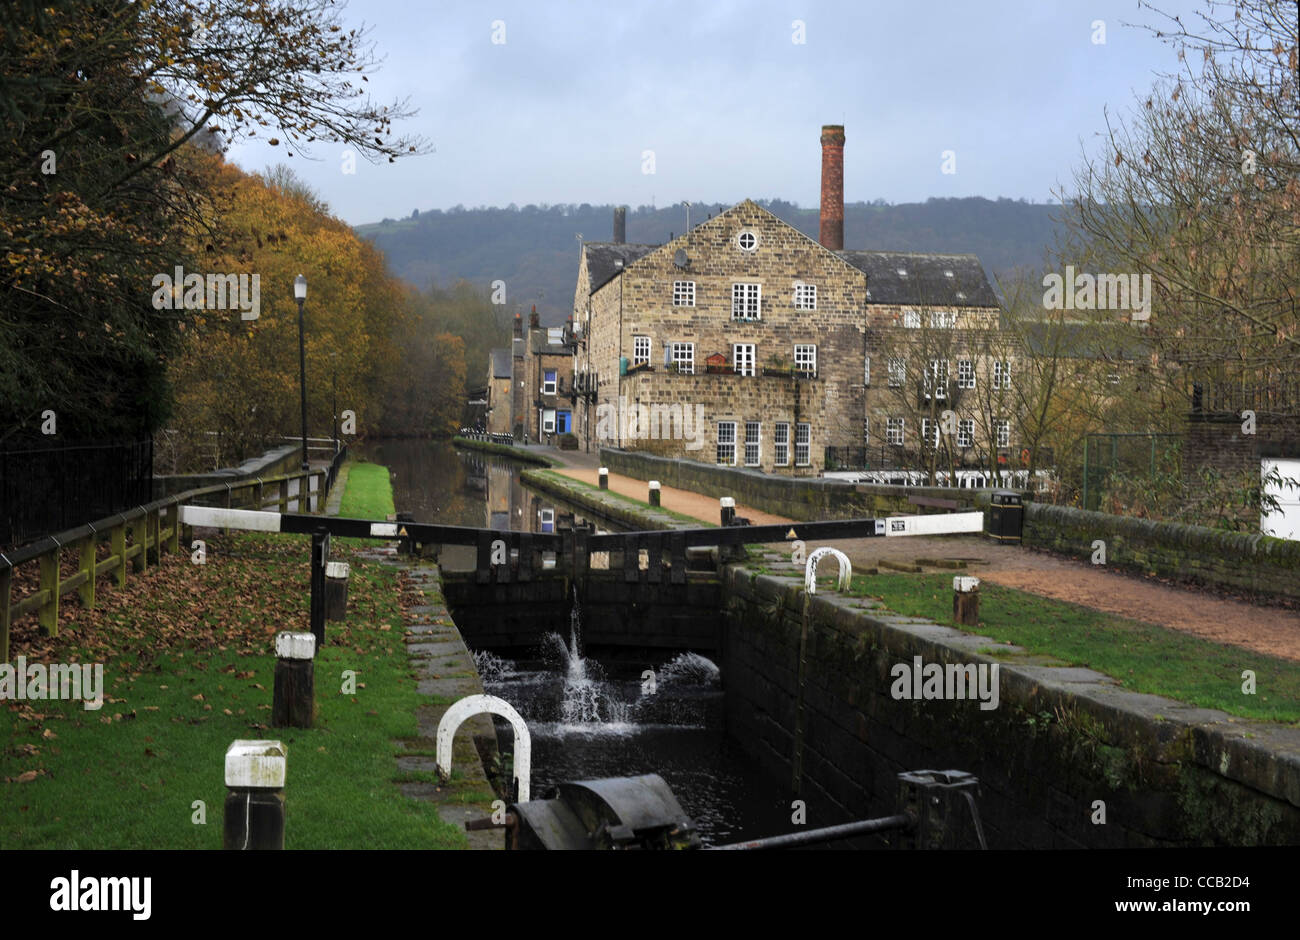 Rochdale canal at Hebden Bridge - Stock Image